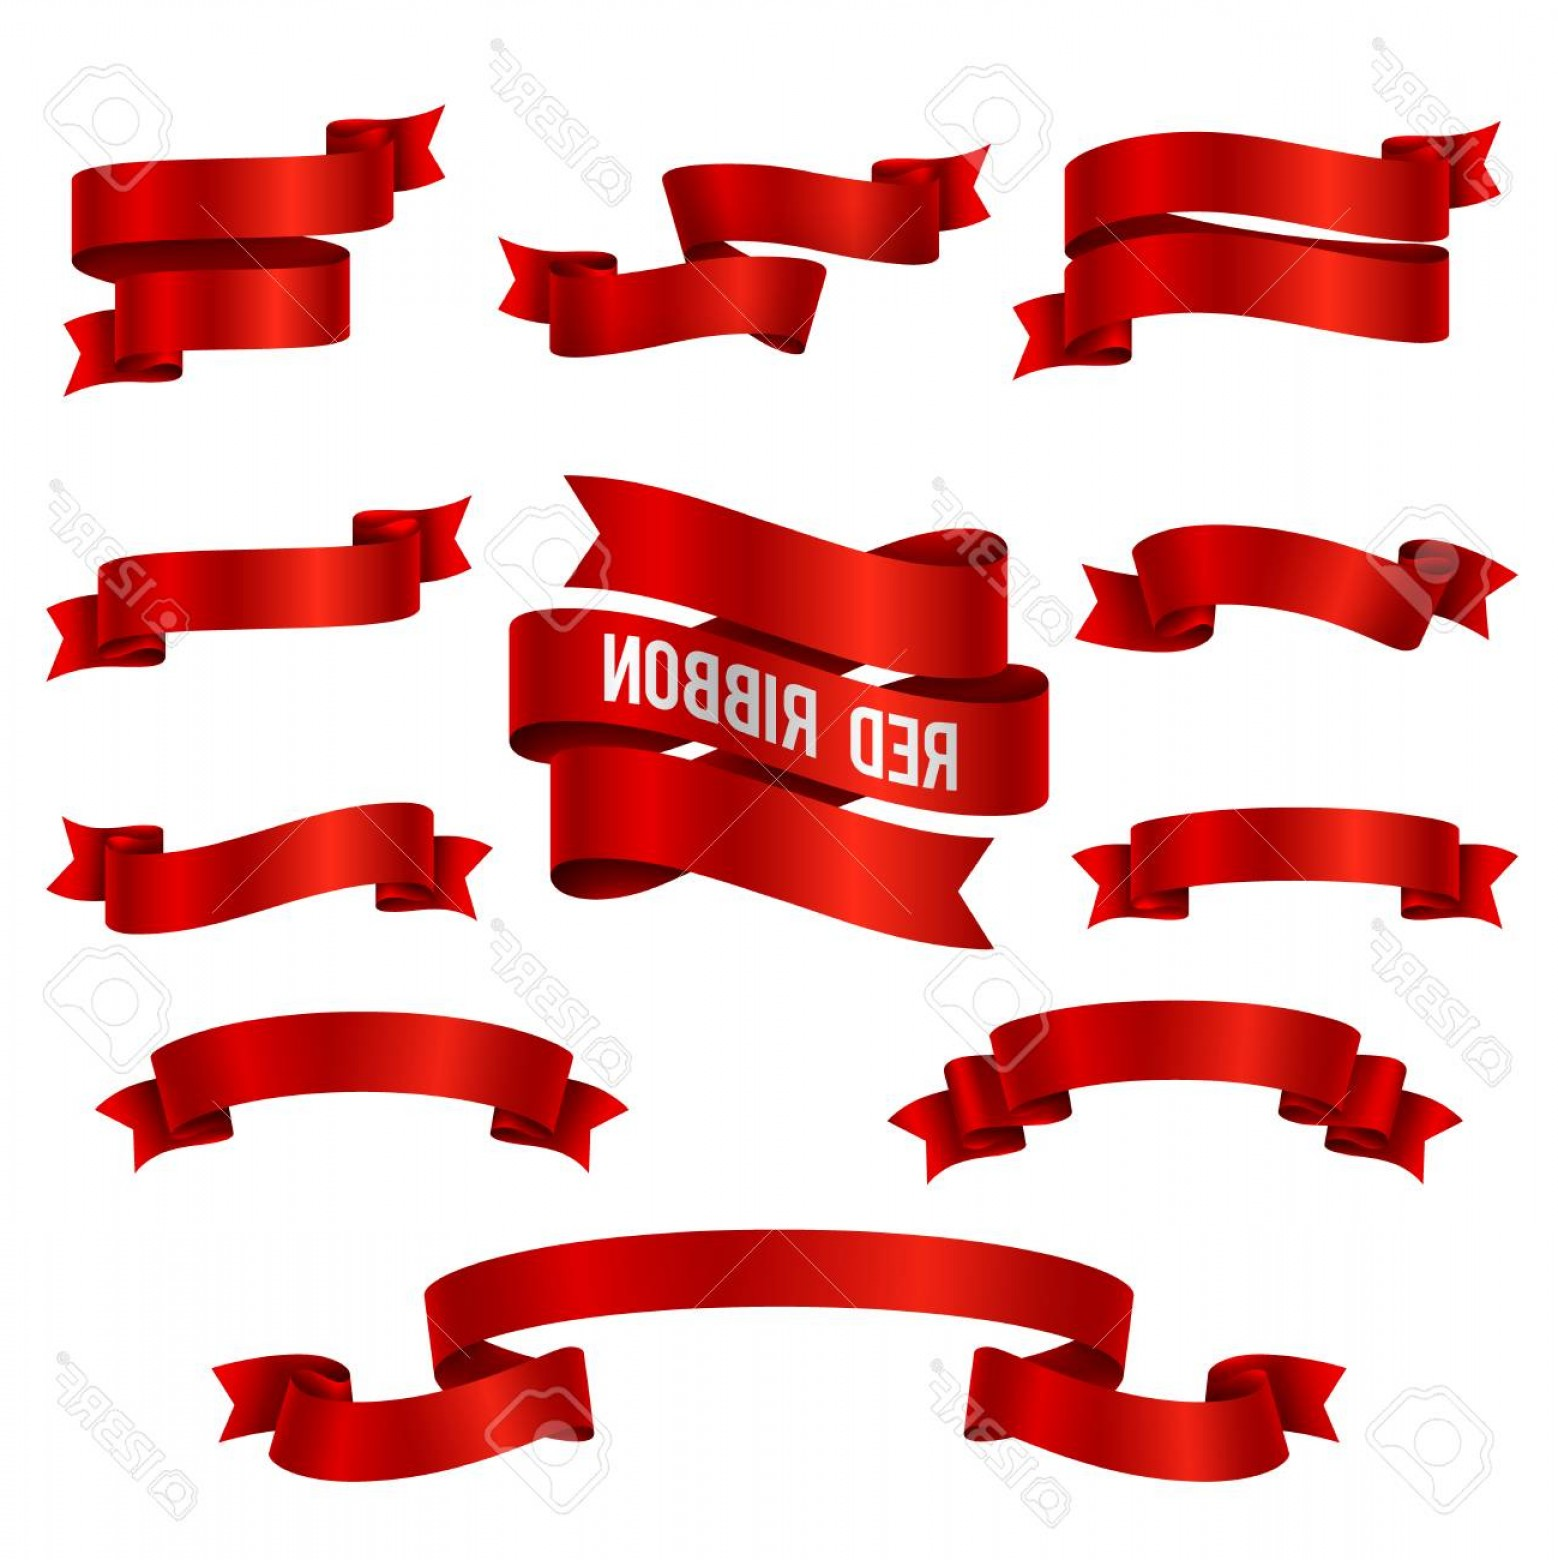 Ribbion Banner Vector: Photostock Vector Silk Red D Ribbon Banners Vector Set Isolated Illustration Of Red Ribbon Collection For Decoration